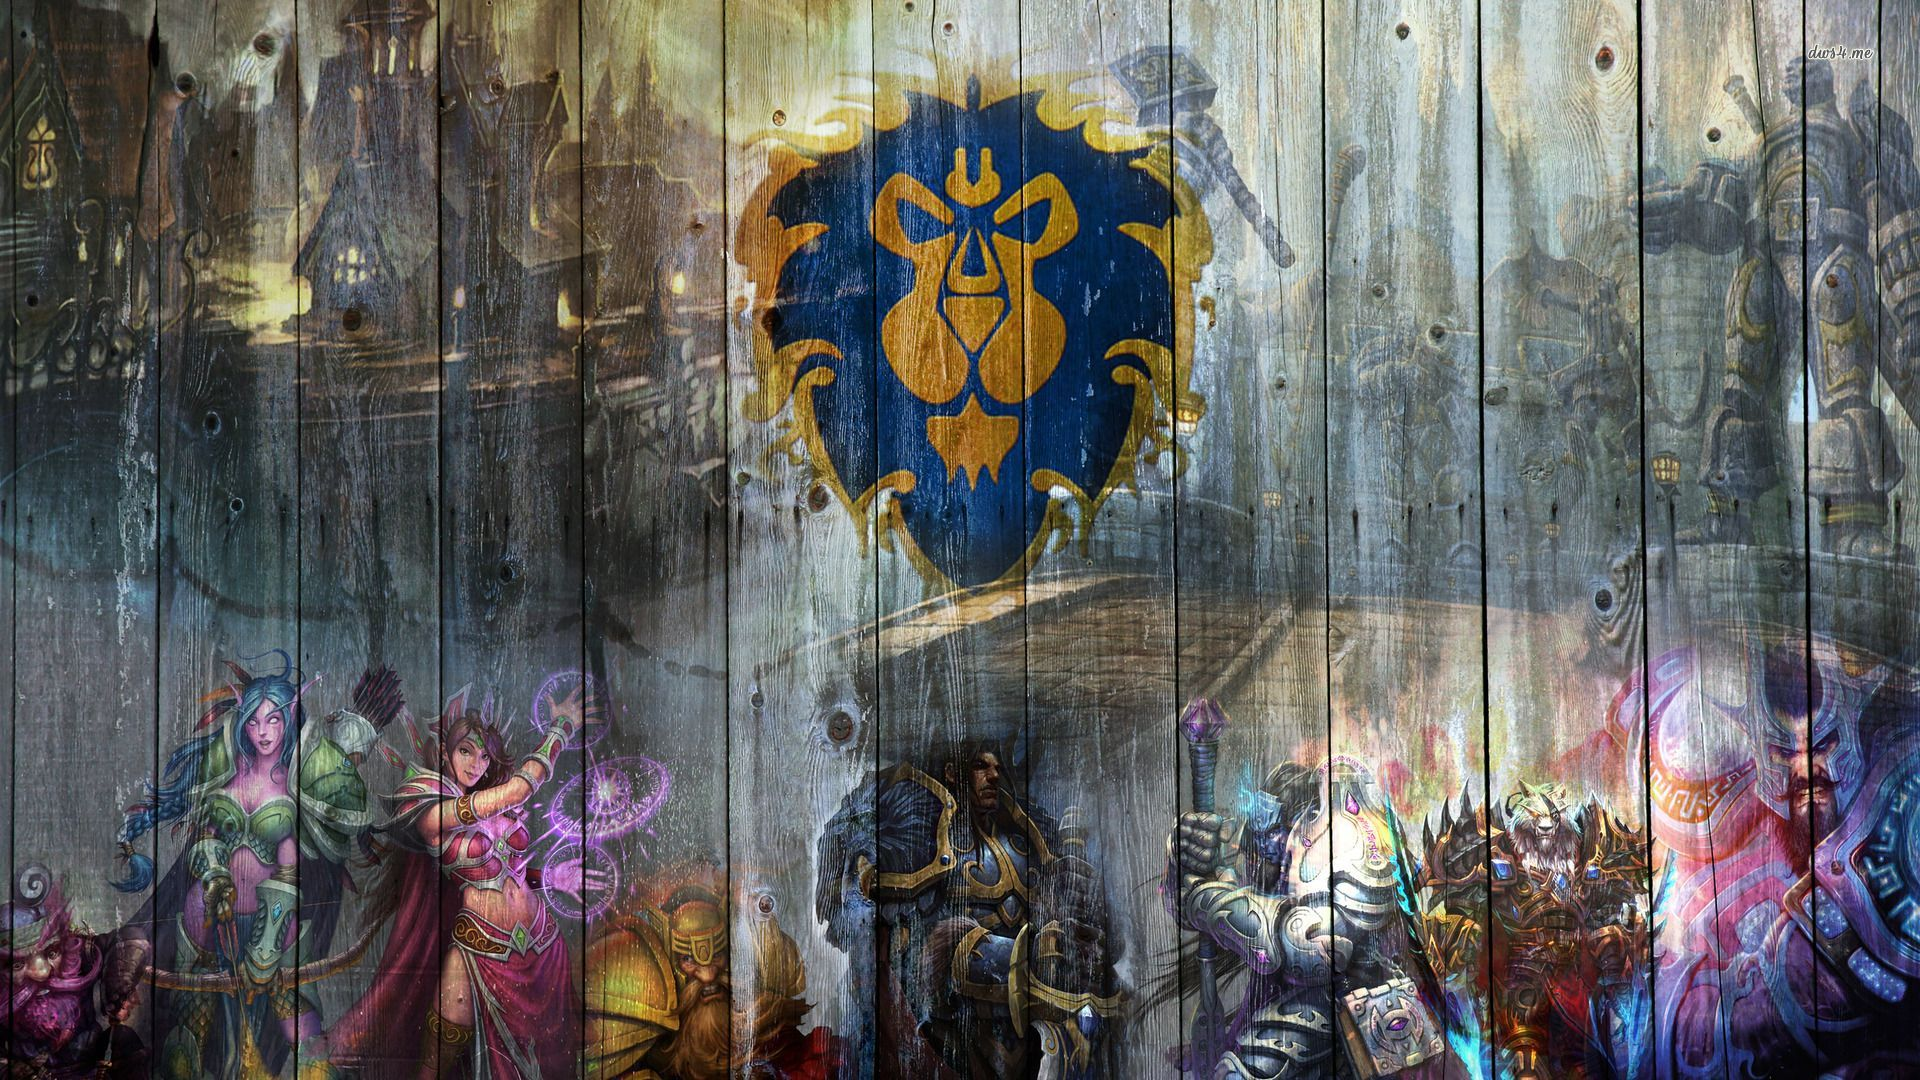 world of warcraft alliance wallpaper - sf wallpaper